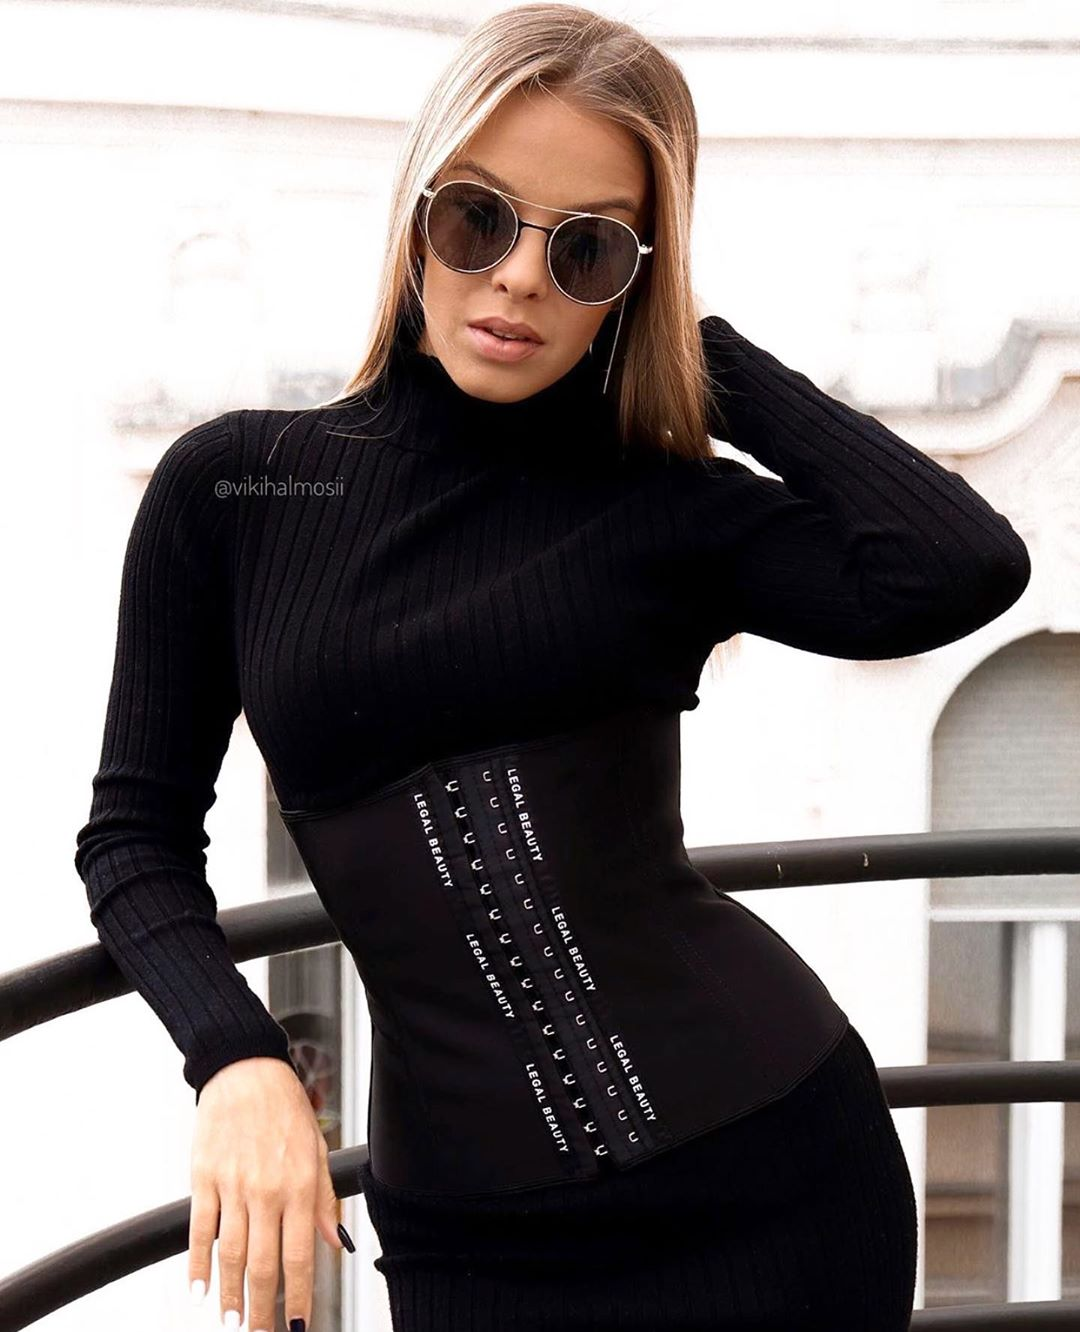 Paris - Waist Trainer - Jet black - XXS